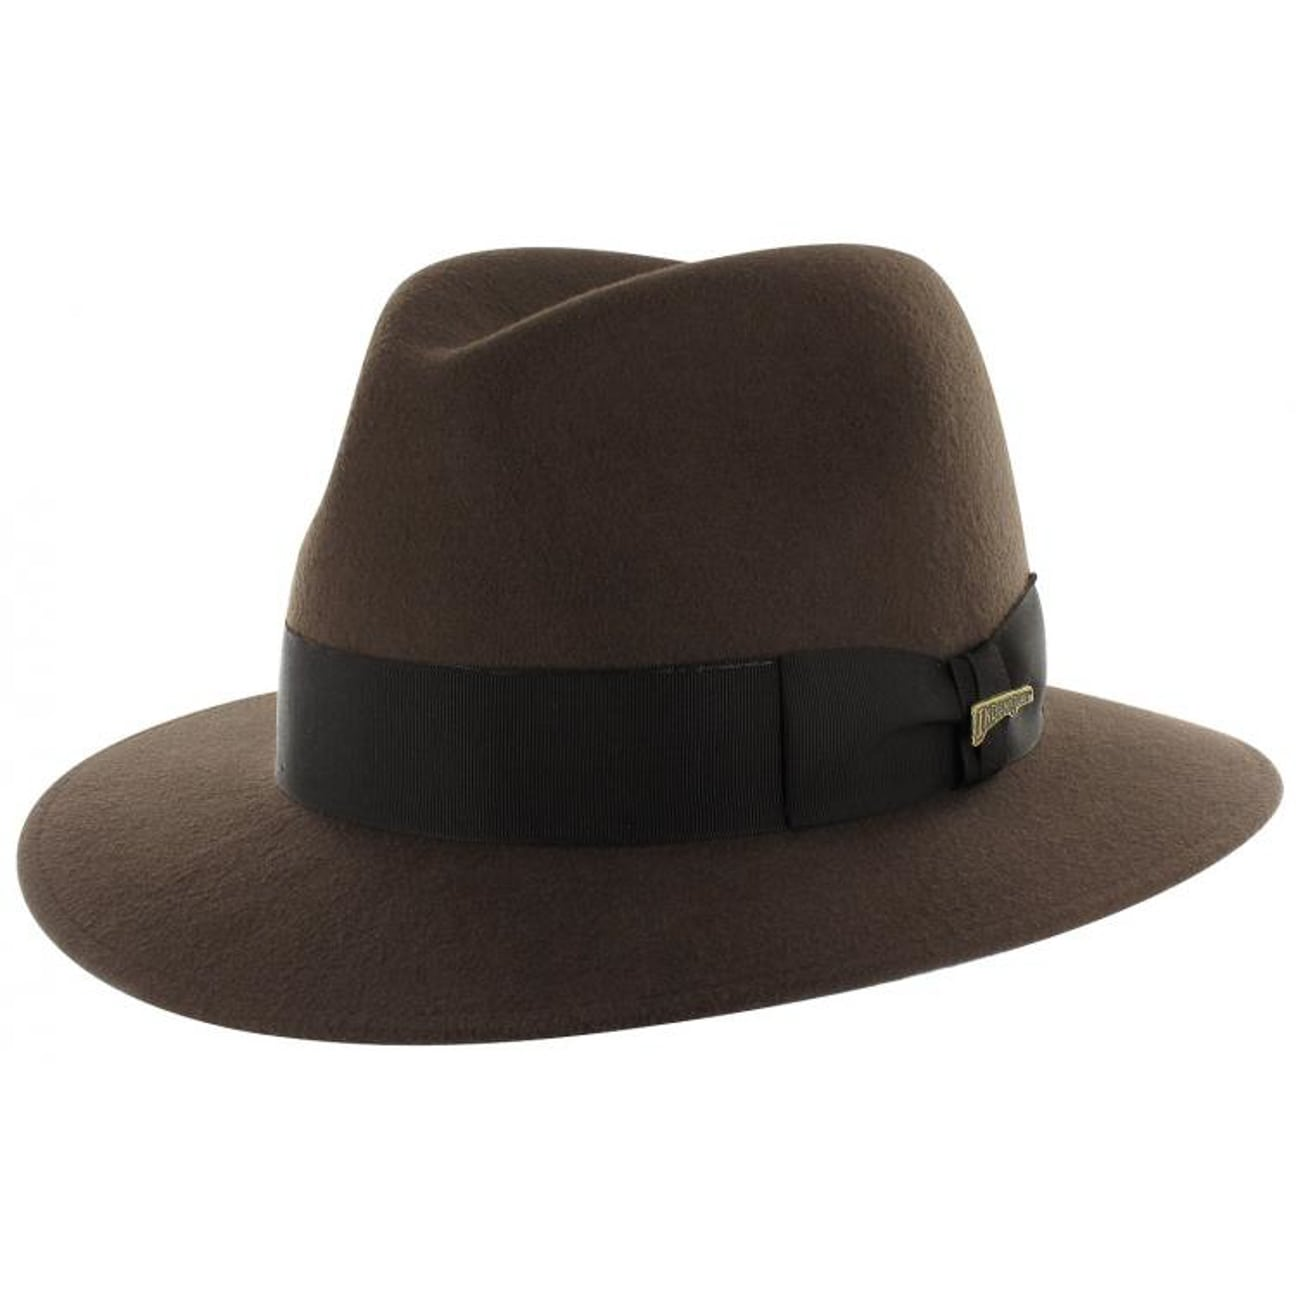 Cappello Indiana Jones - marrone scuro 1 ... 5304c6e73356